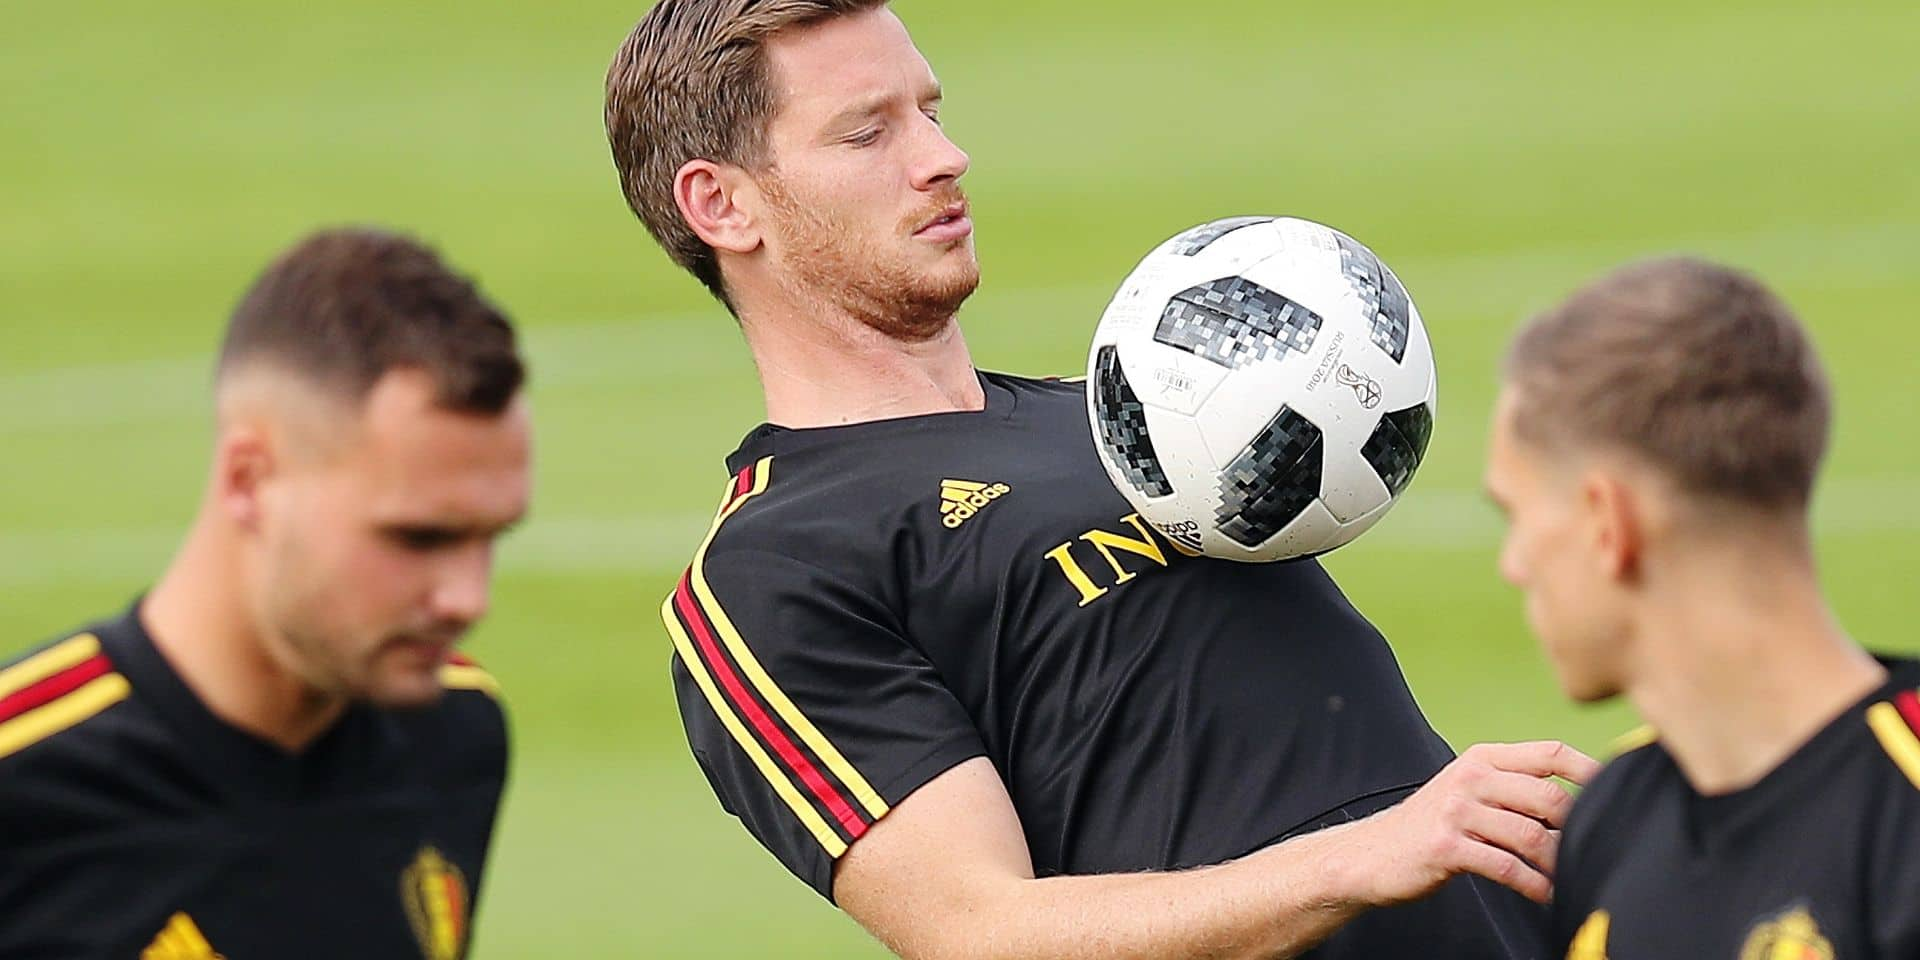 Belgium's Jan Vertonghen pictured during a training session of Belgian national soccer team the Red Devils in Tubize, Tuesday 04 September 2018. The team is preparing for a friendly match against Scotland on 07 September and the UEFA Nations League match against Iceland on 11 September. BELGA PHOTO BRUNO FAHY